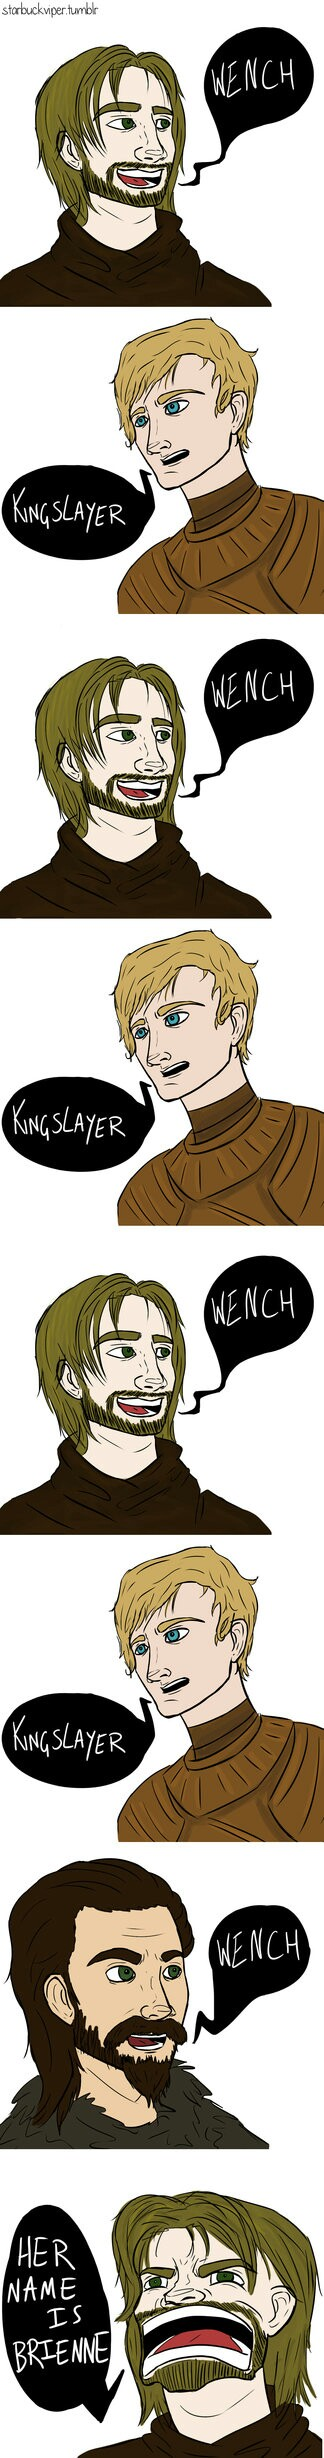 Only jaime can call Brianne wench